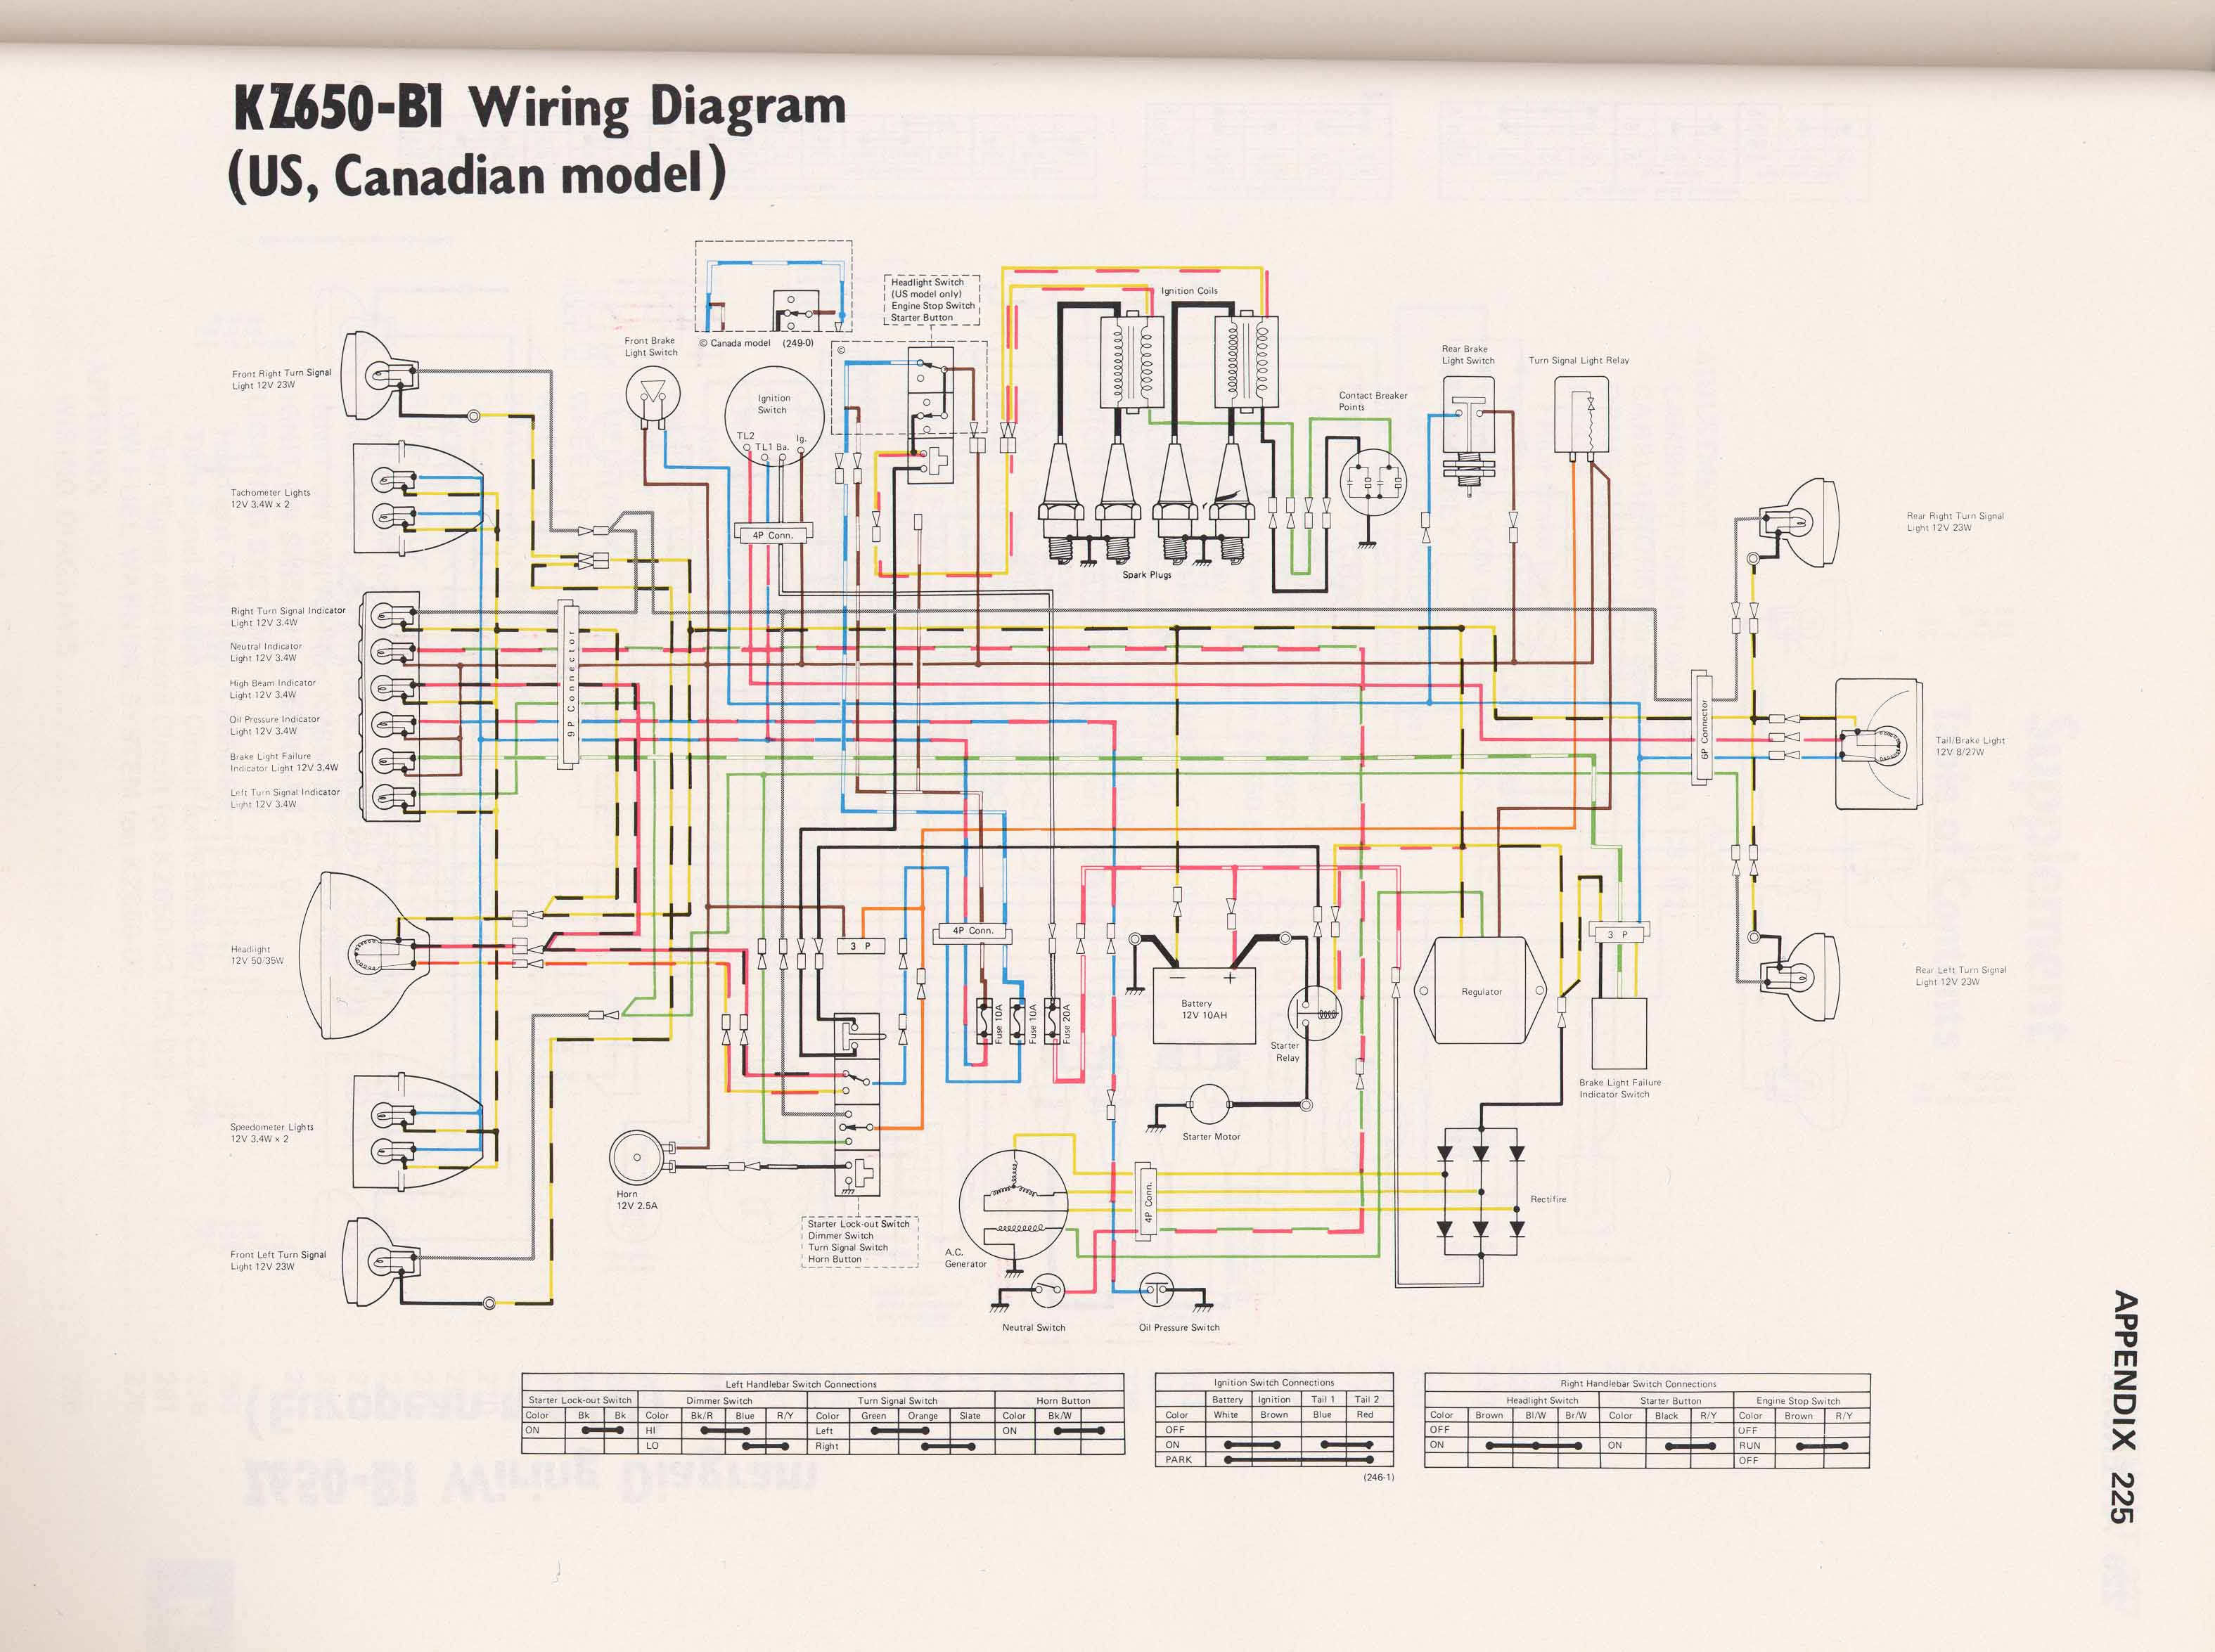 KZ650 B1 kz650 info wiring diagrams z650 wiring diagram at reclaimingppi.co